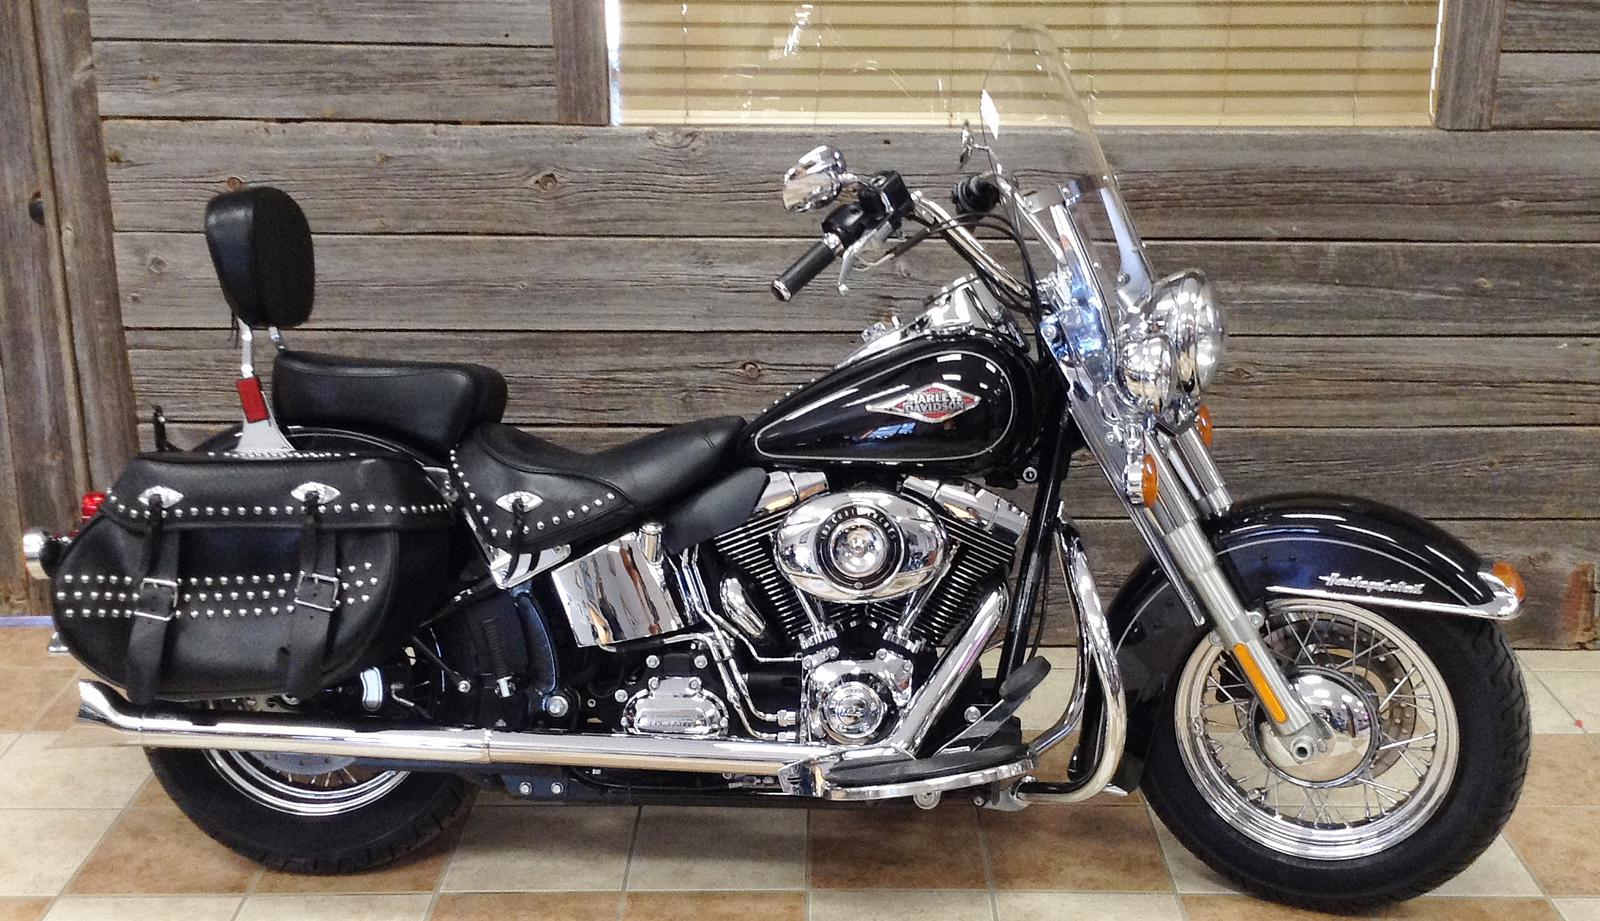 2013 Harley-Davidson® FLSTC Heritage Softail® Classic for sale in